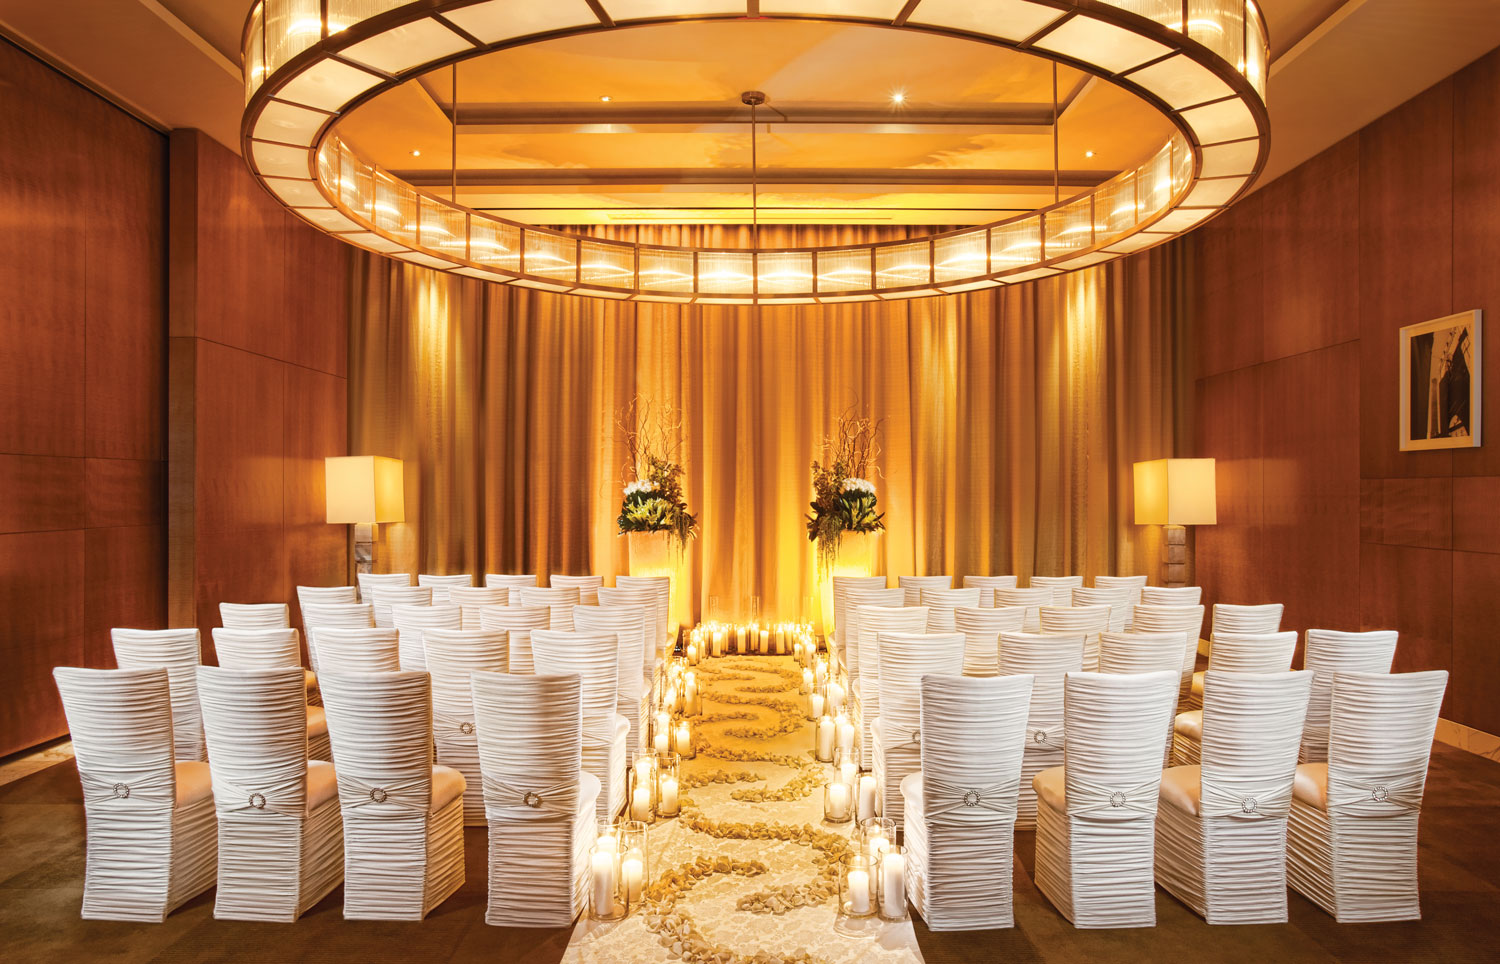 wedding ceremony with unique chairs guest seating by chameleon chair collection